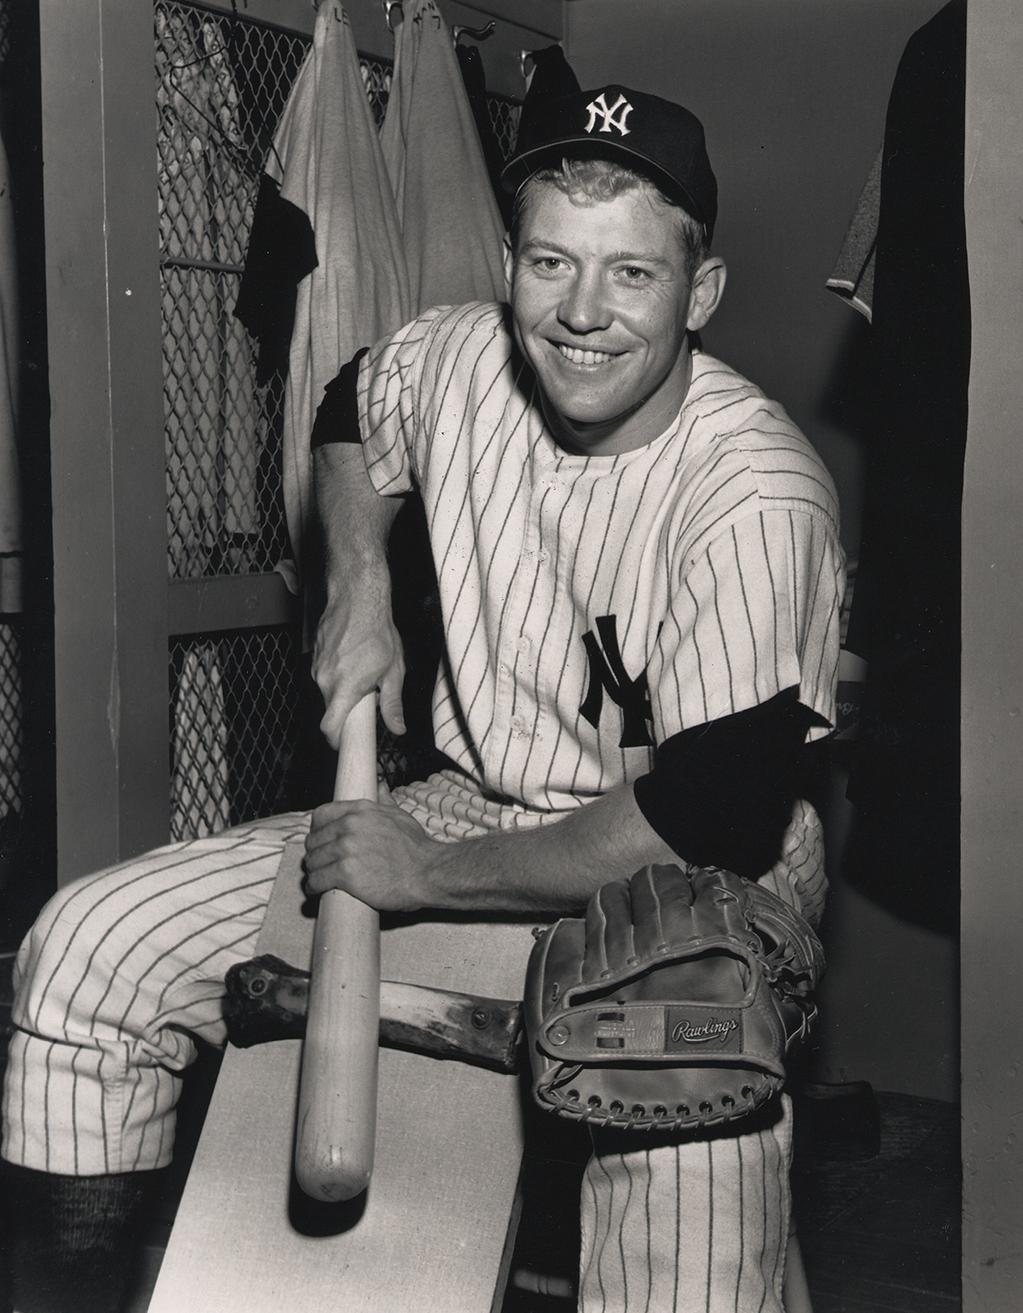 RT @Yankees: Oct. 20, 1931: Mickey Charles Mantle, the greatest switch-hitter in baseball history, is born in Spavinaw, Oklahoma. http://t.co/T9wYXEDs32